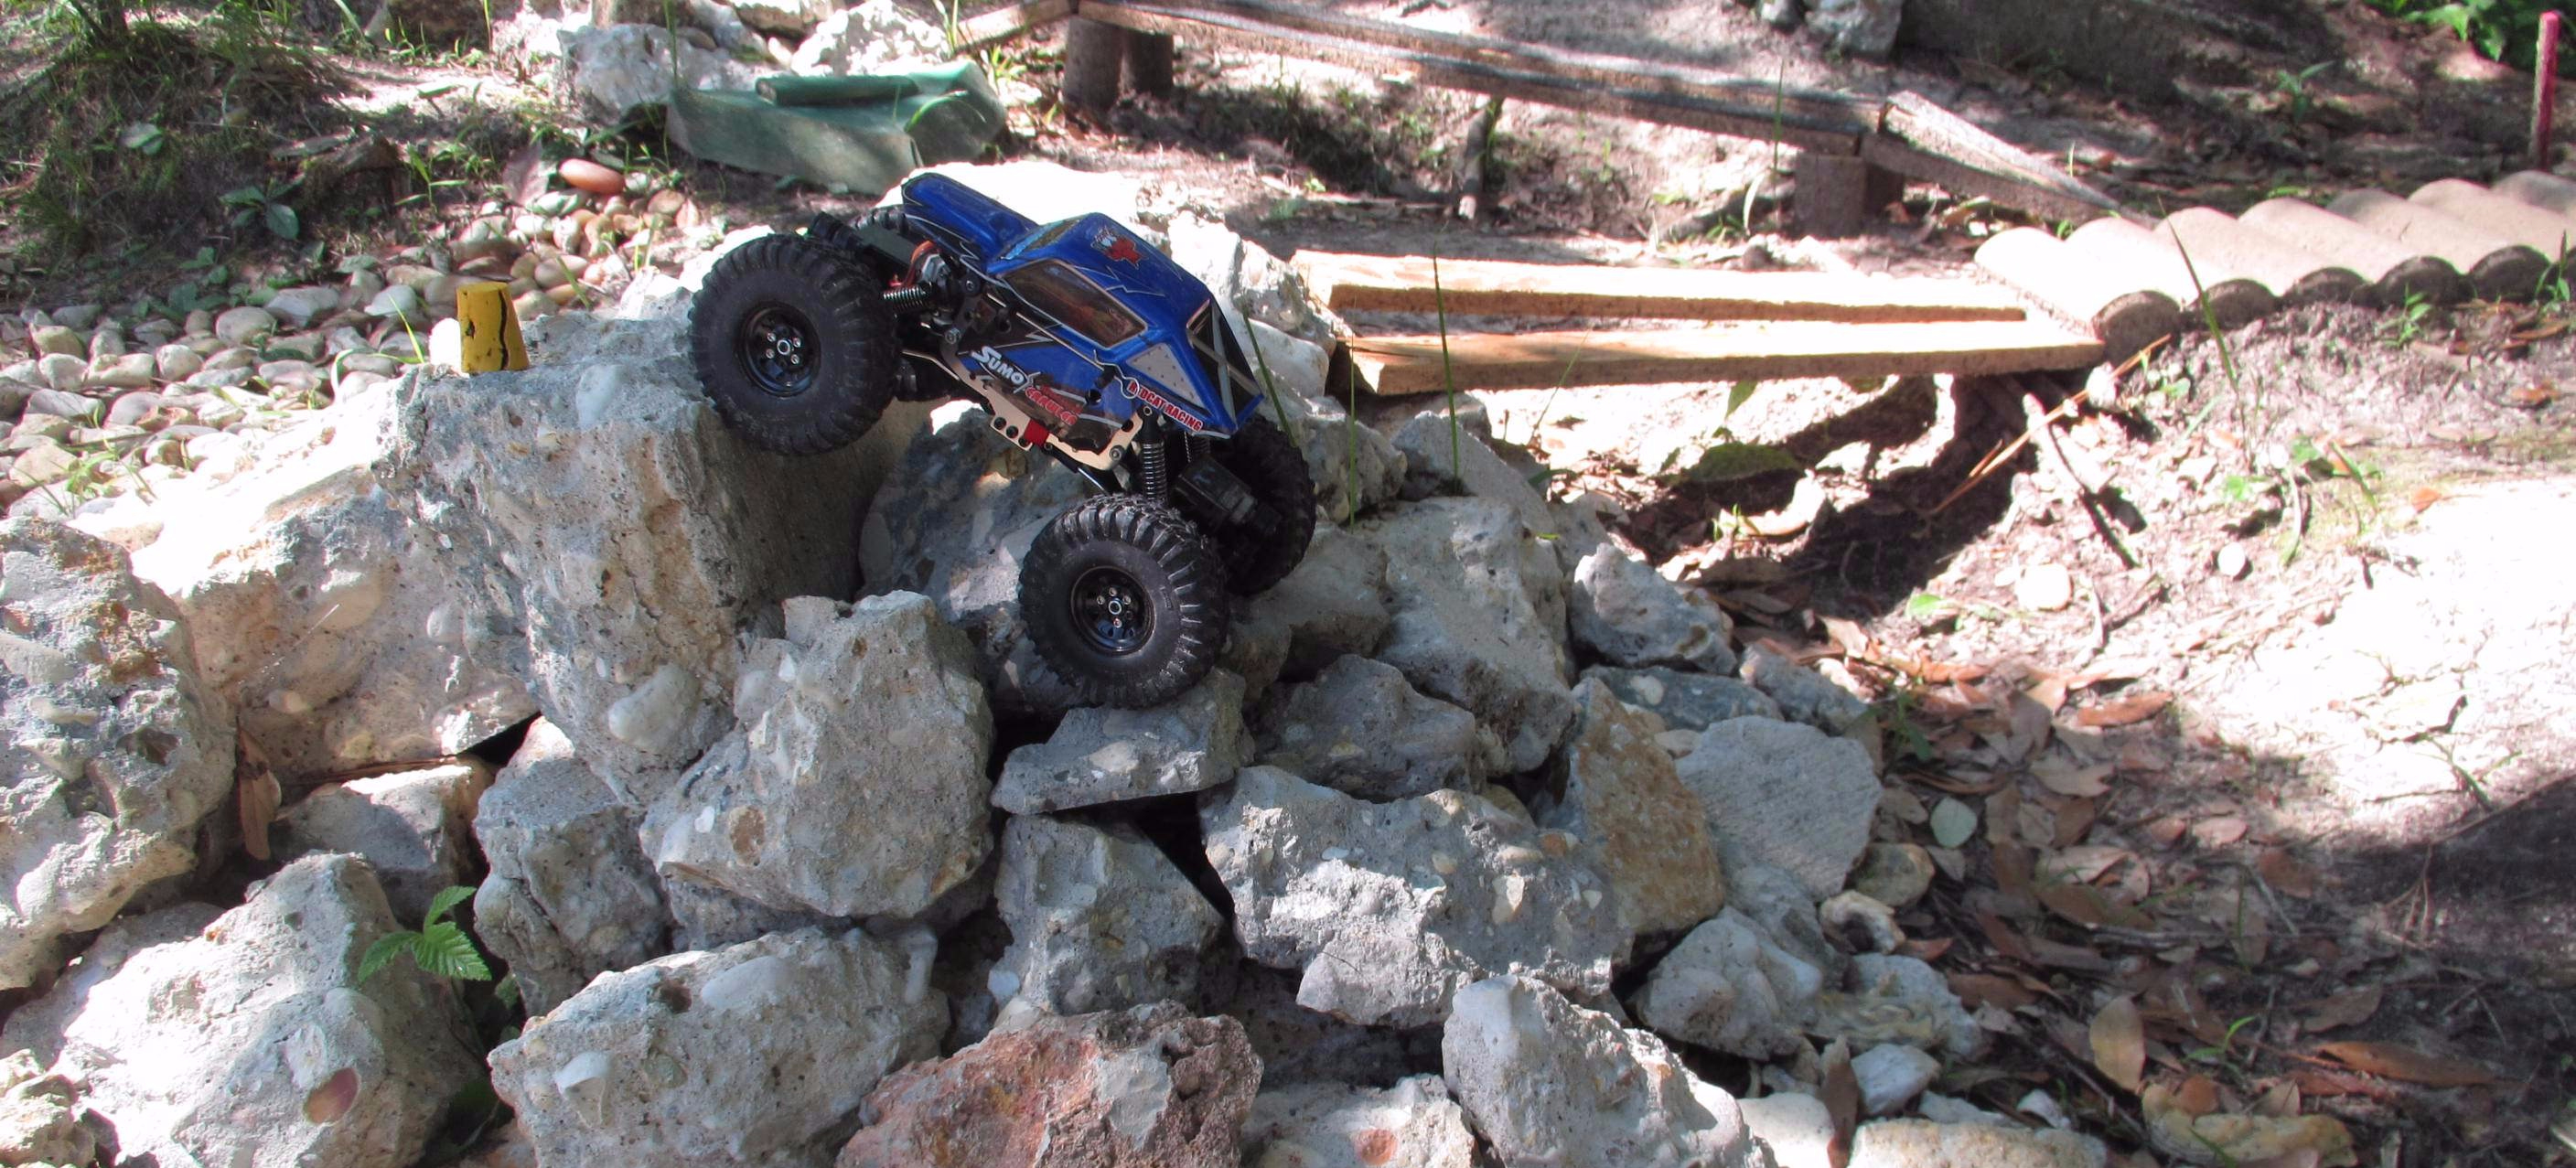 Built to Rock: A Custom, Small-Scale R/C Crawler Course! [Pics]